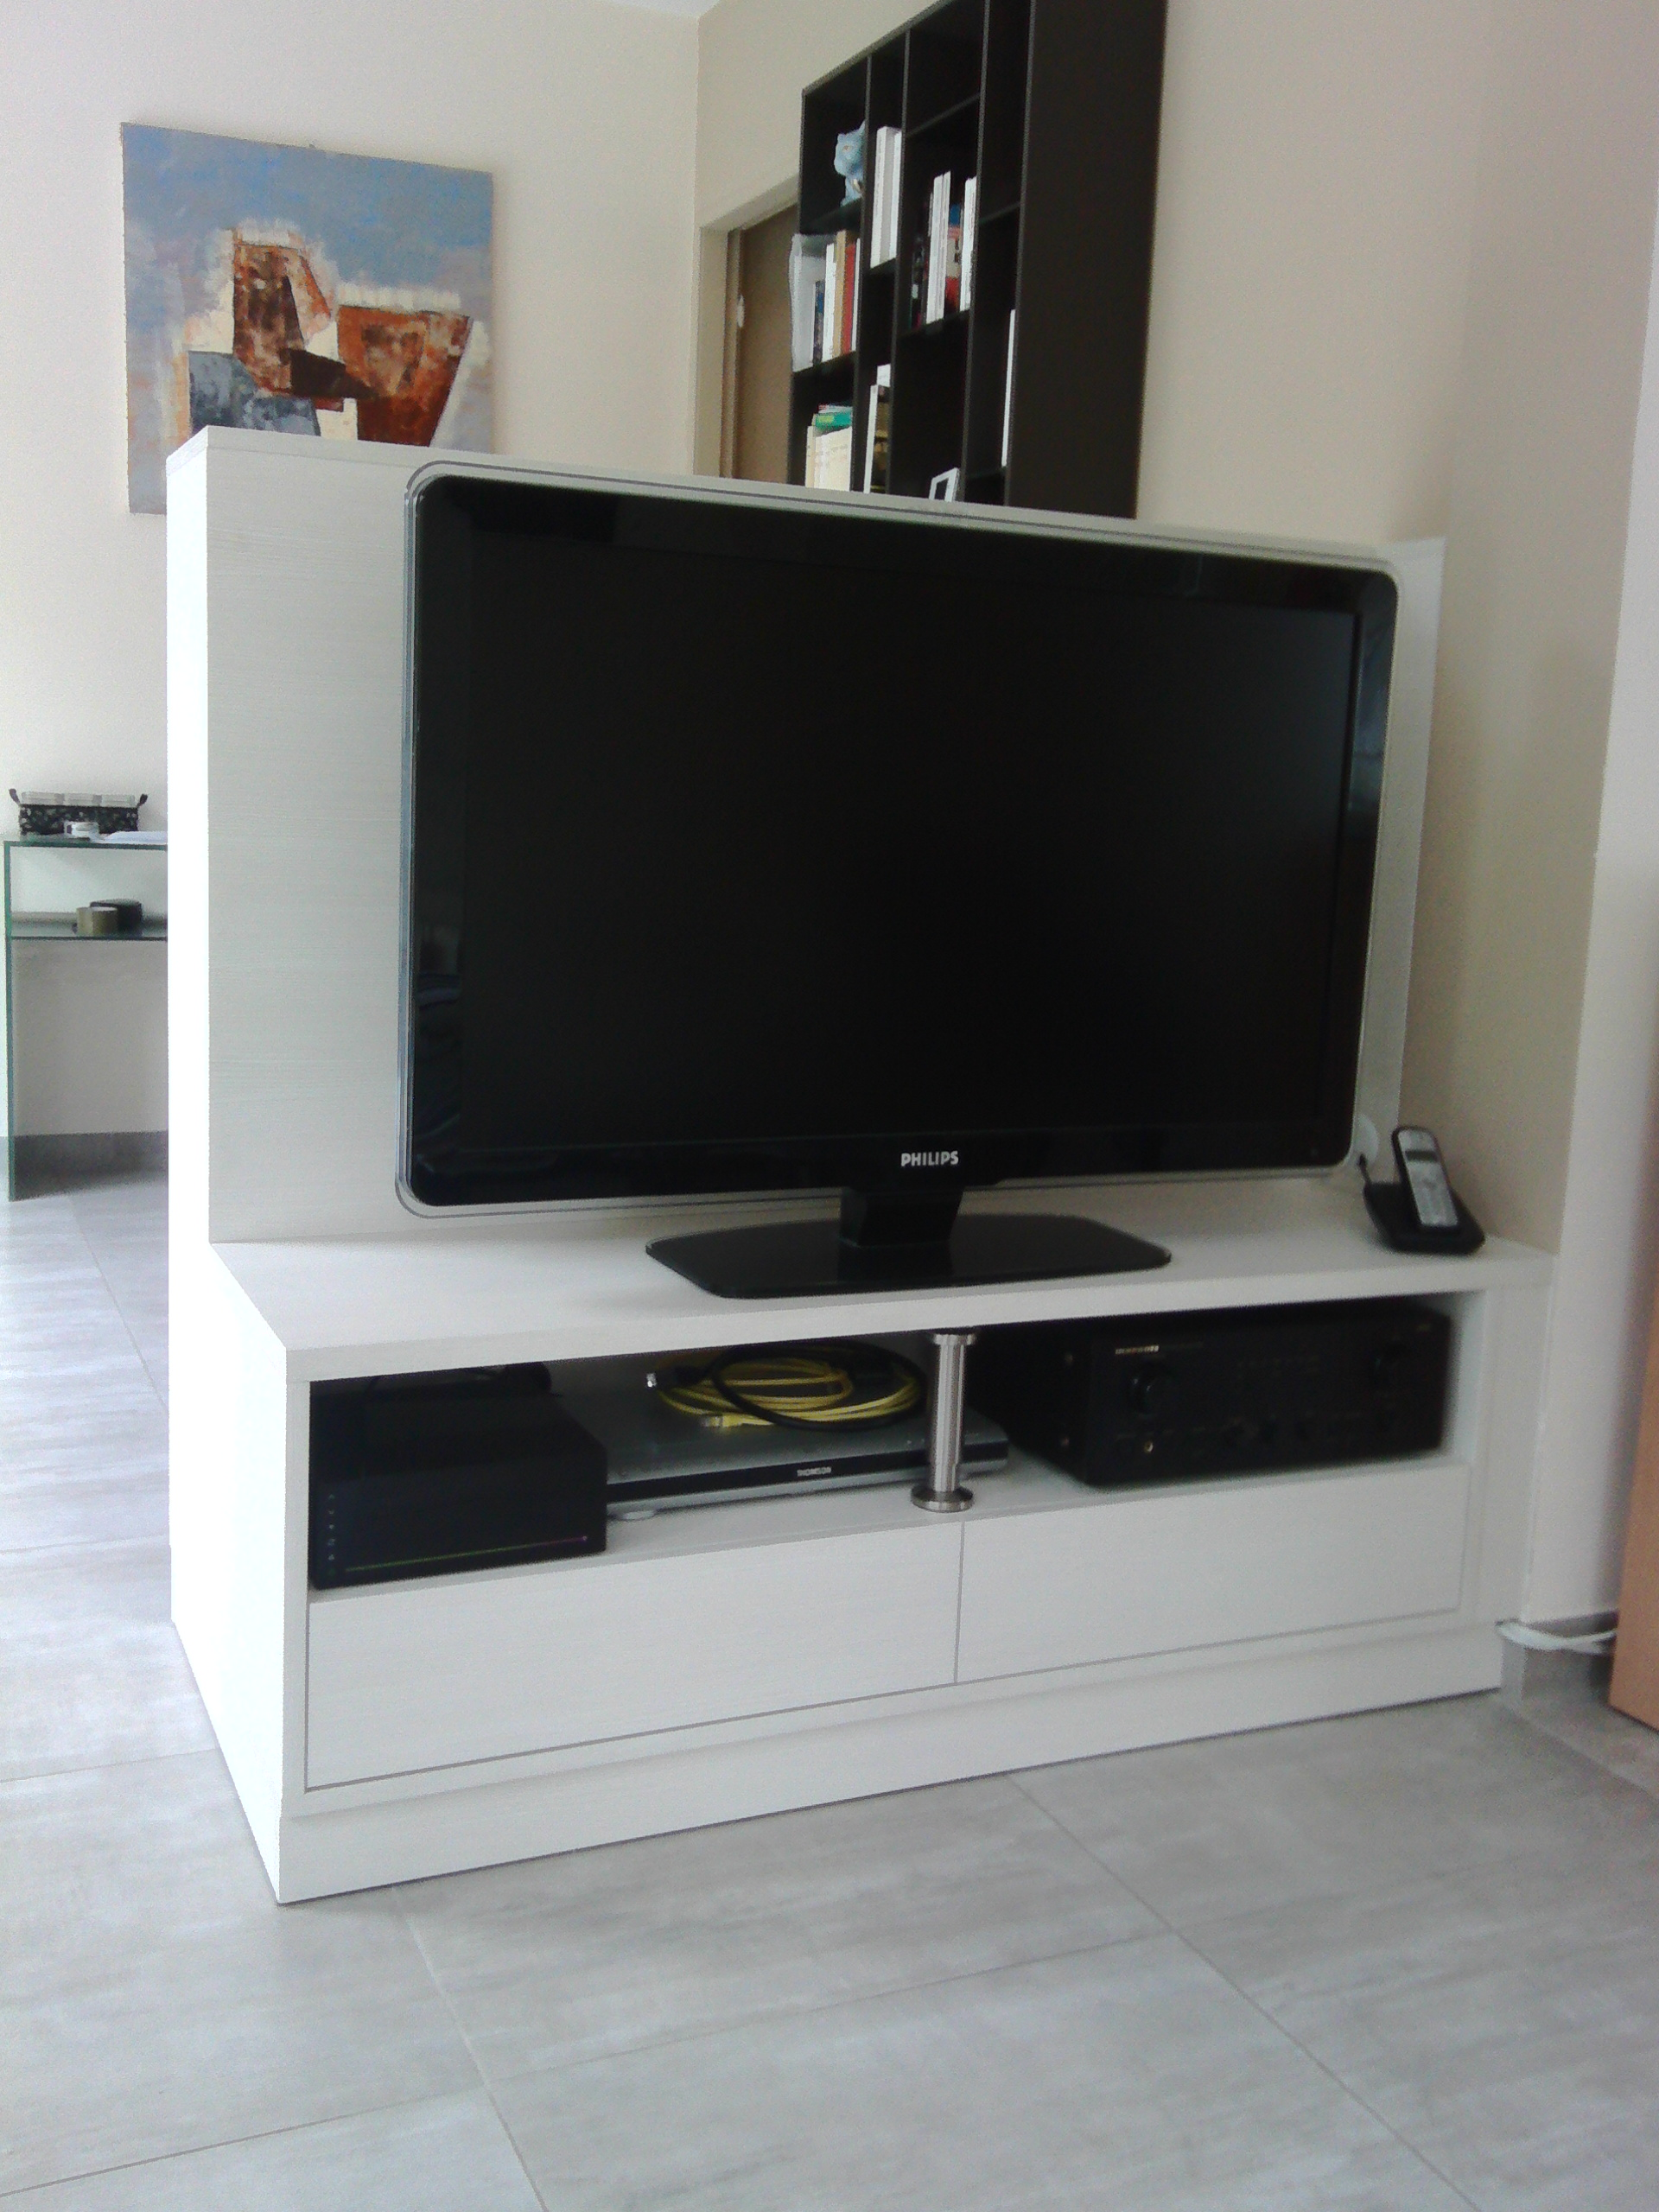 S paration de piece - Meuble de separation ikea ...